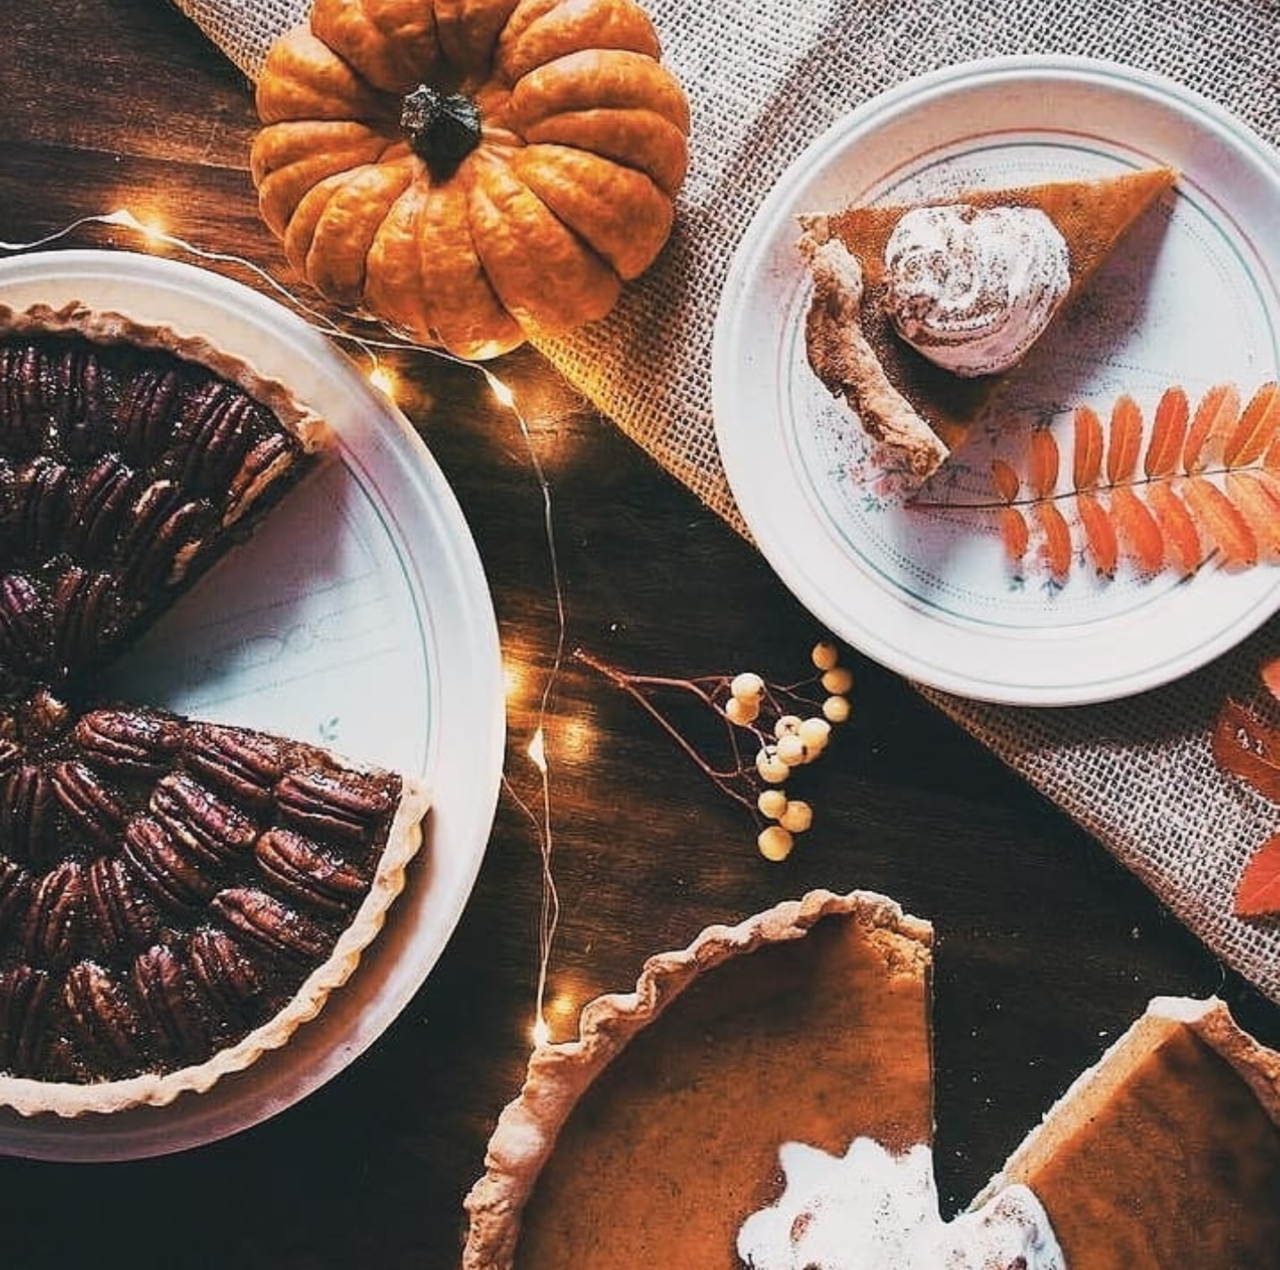 fall aesthetic, cool whip, desserts and thanksgiving day